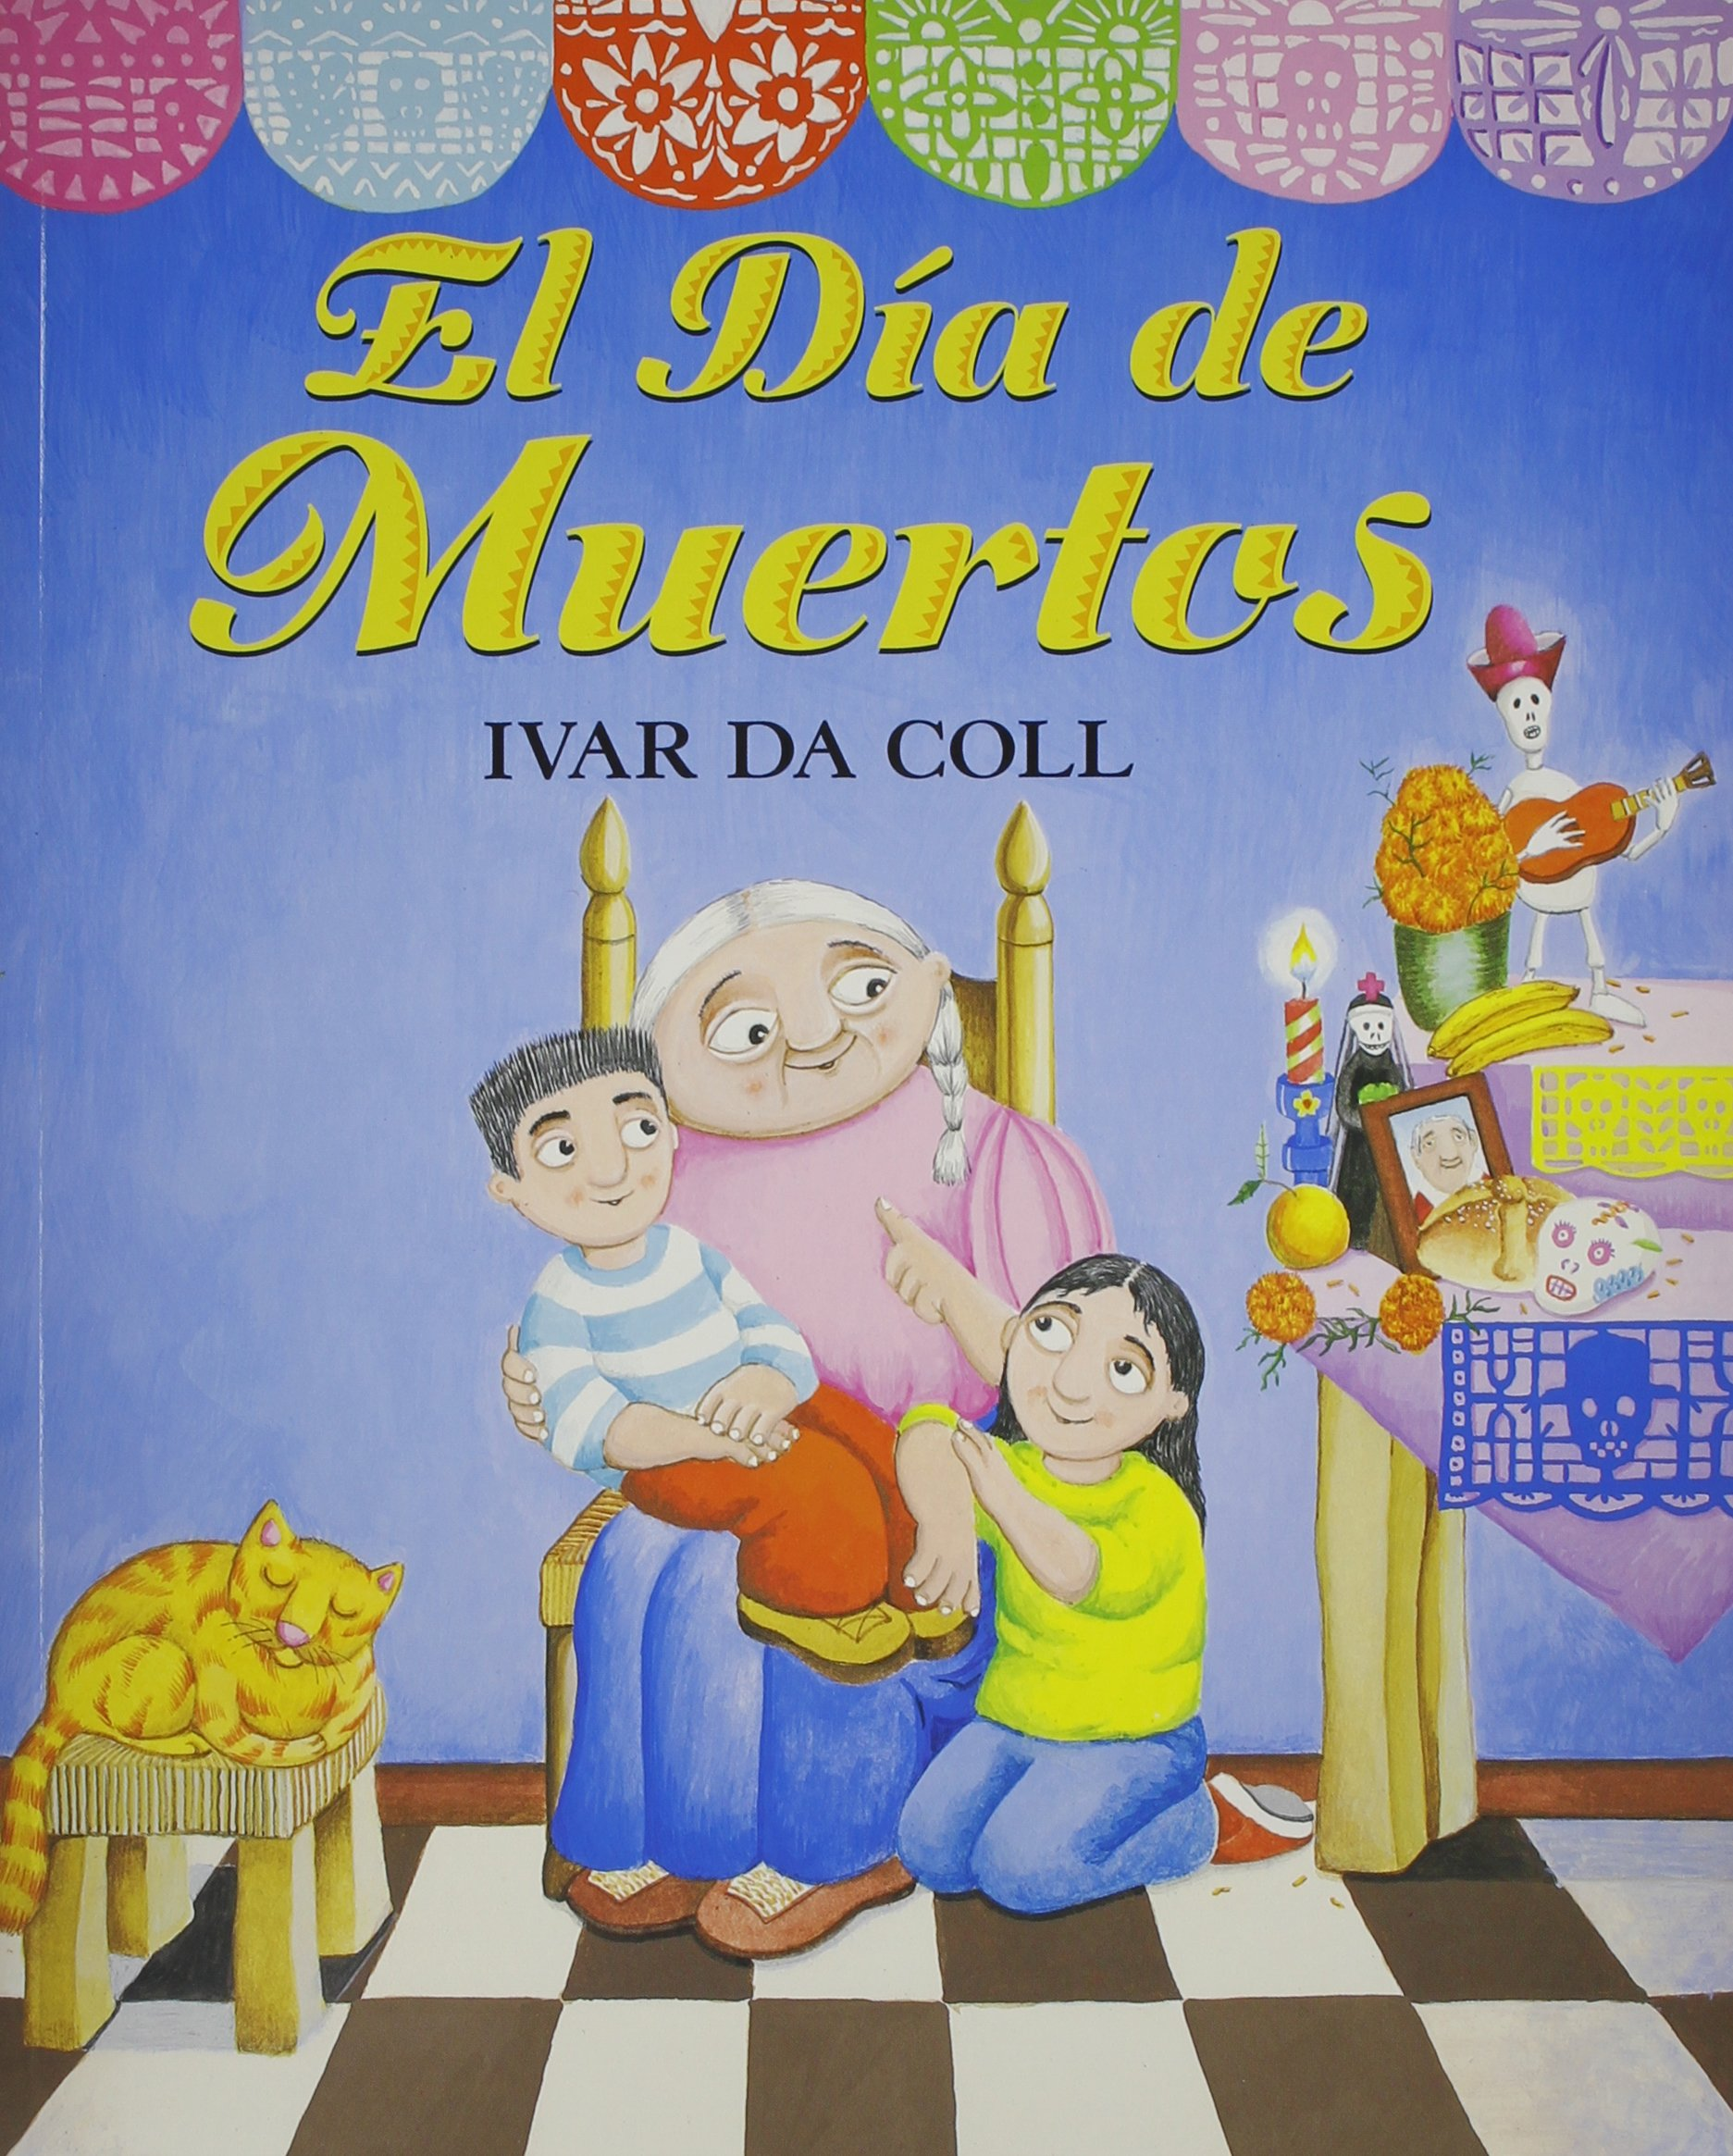 El dia de muertos / The Day of the Dead (Spanish Edition)